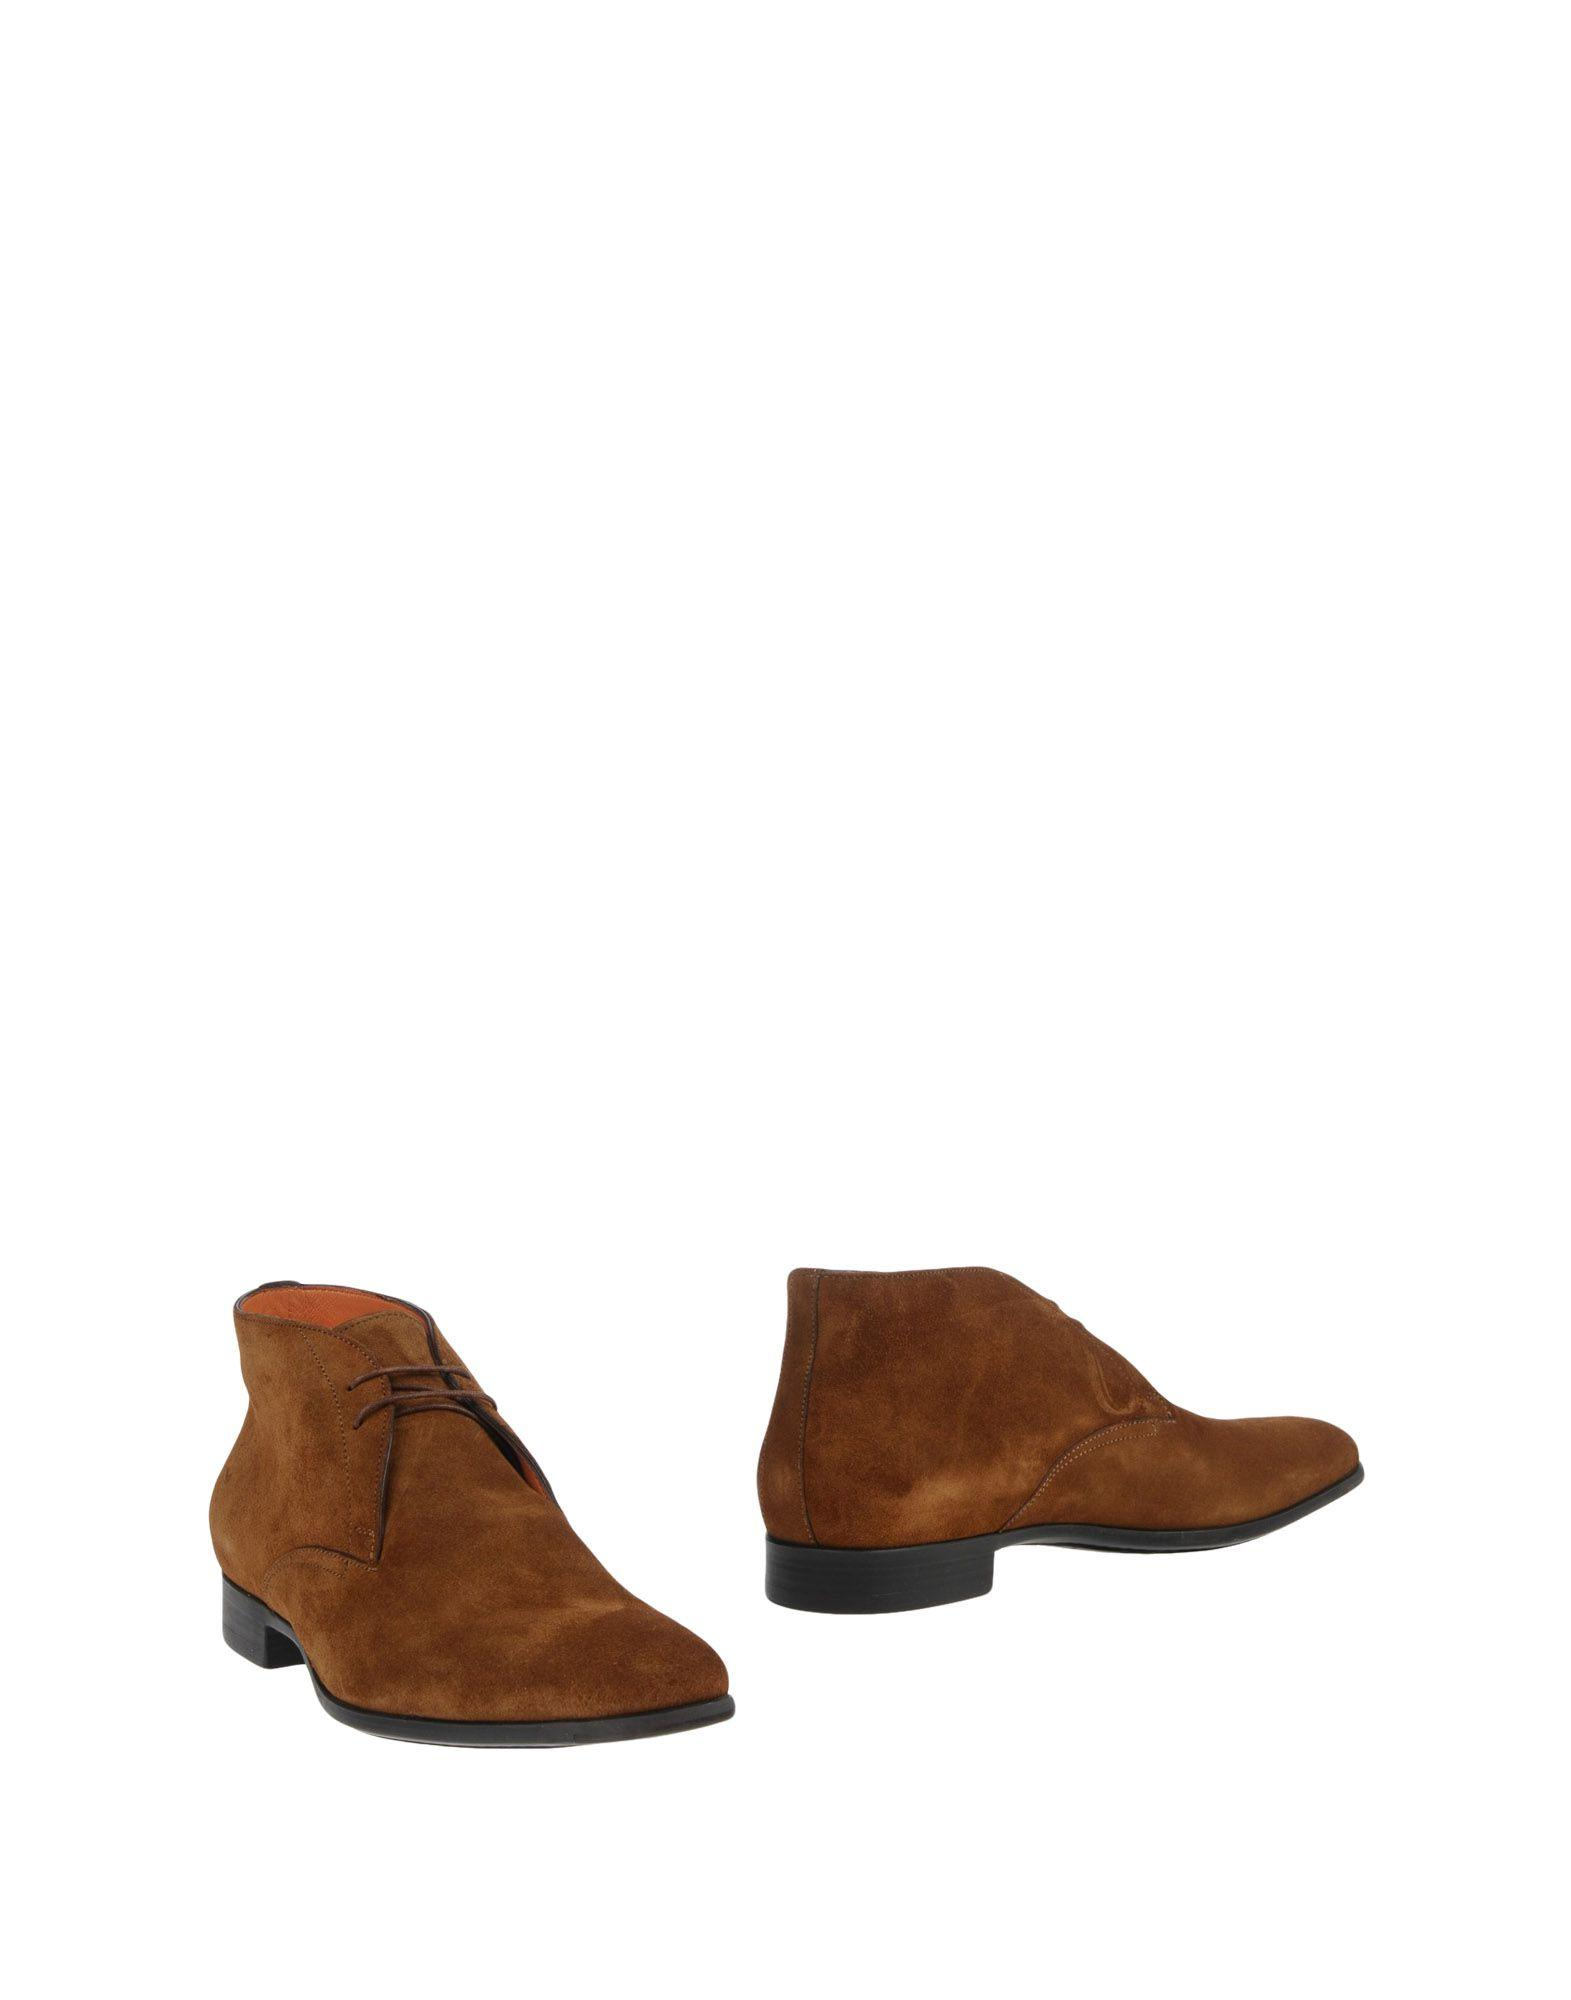 Santoni Ankle Boots In Camel